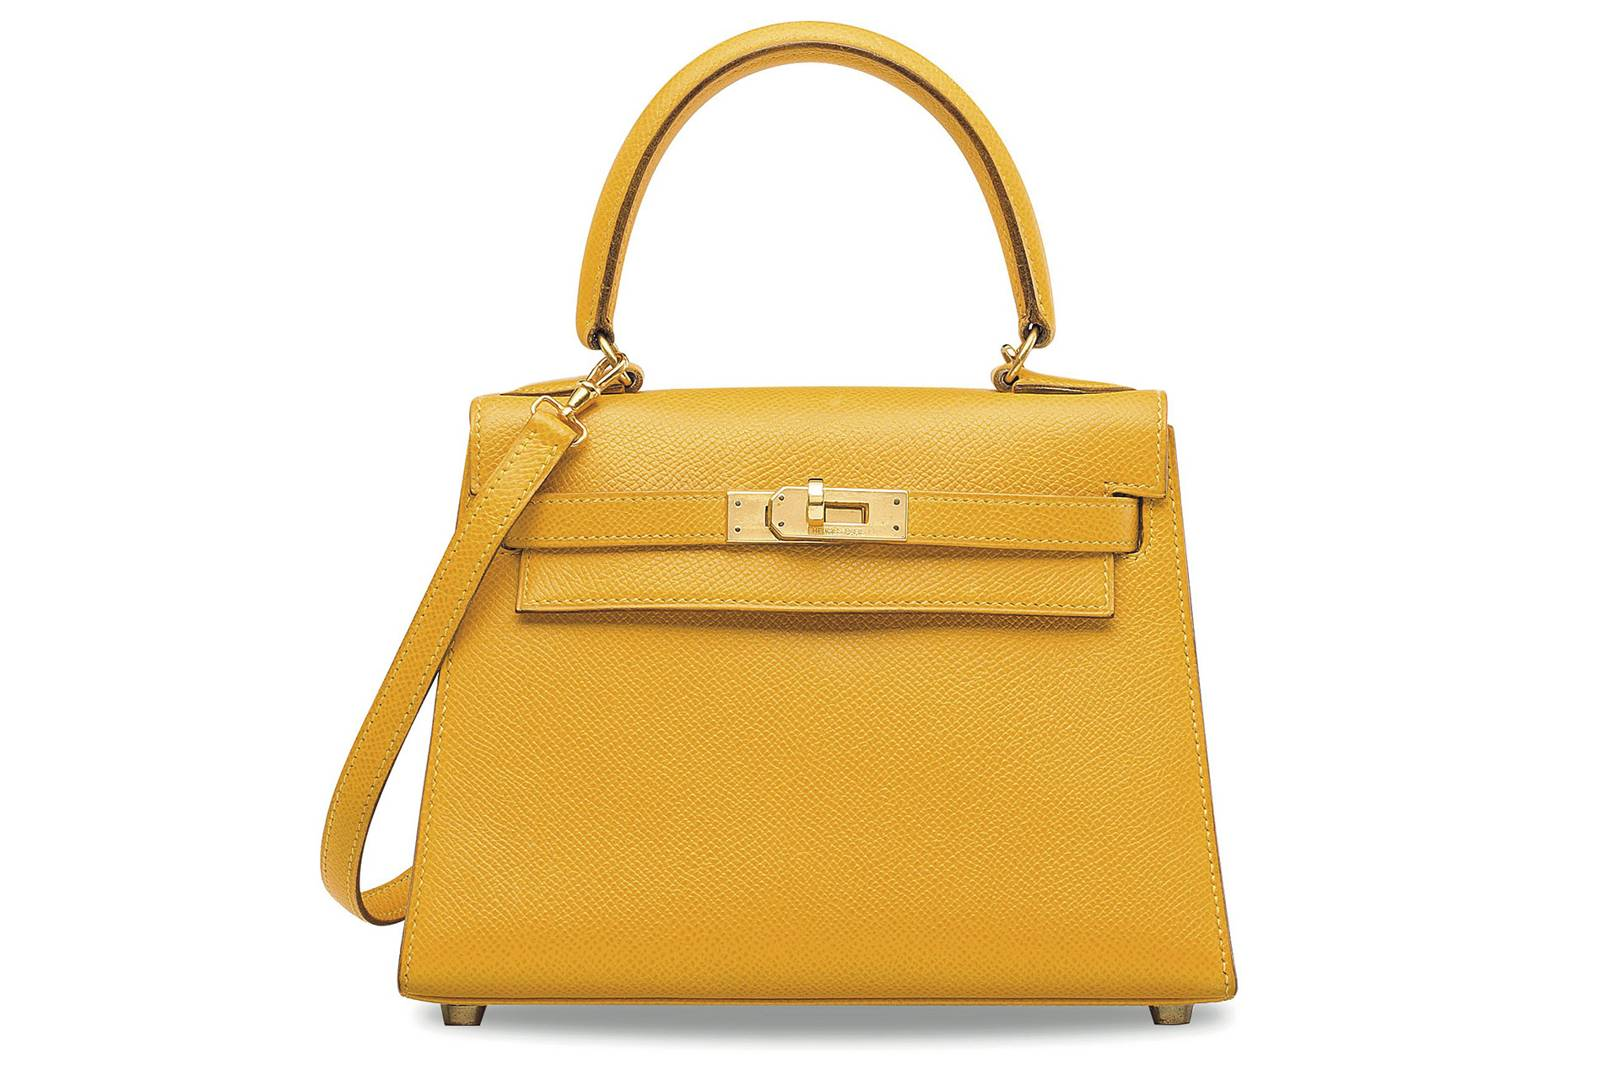 dd1363a29695 The World's Most Expensive Handbags – Paris Sale To Spark A Frenzy |  British Vogue